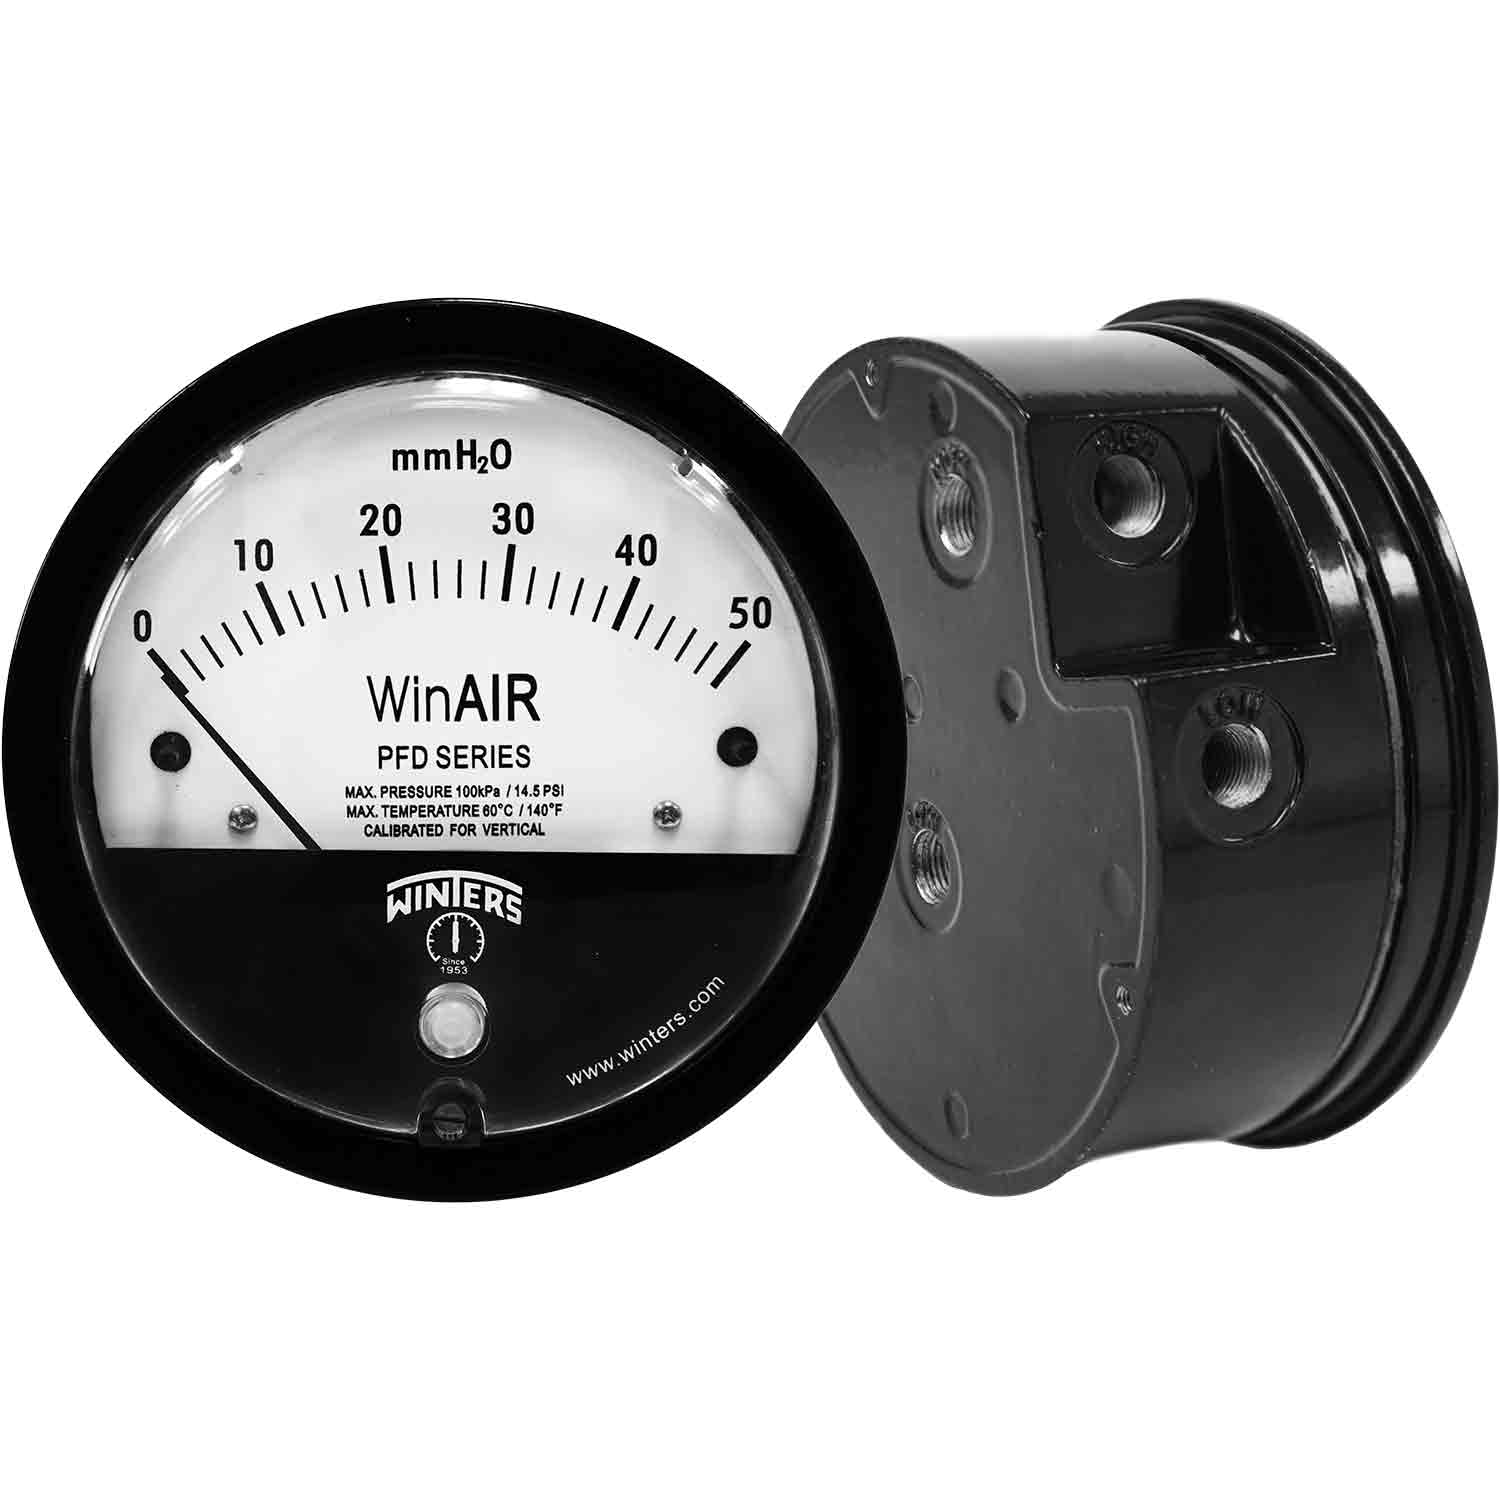 PFD WinAIR DIFFERENTIAL PRESSURE GAUGE